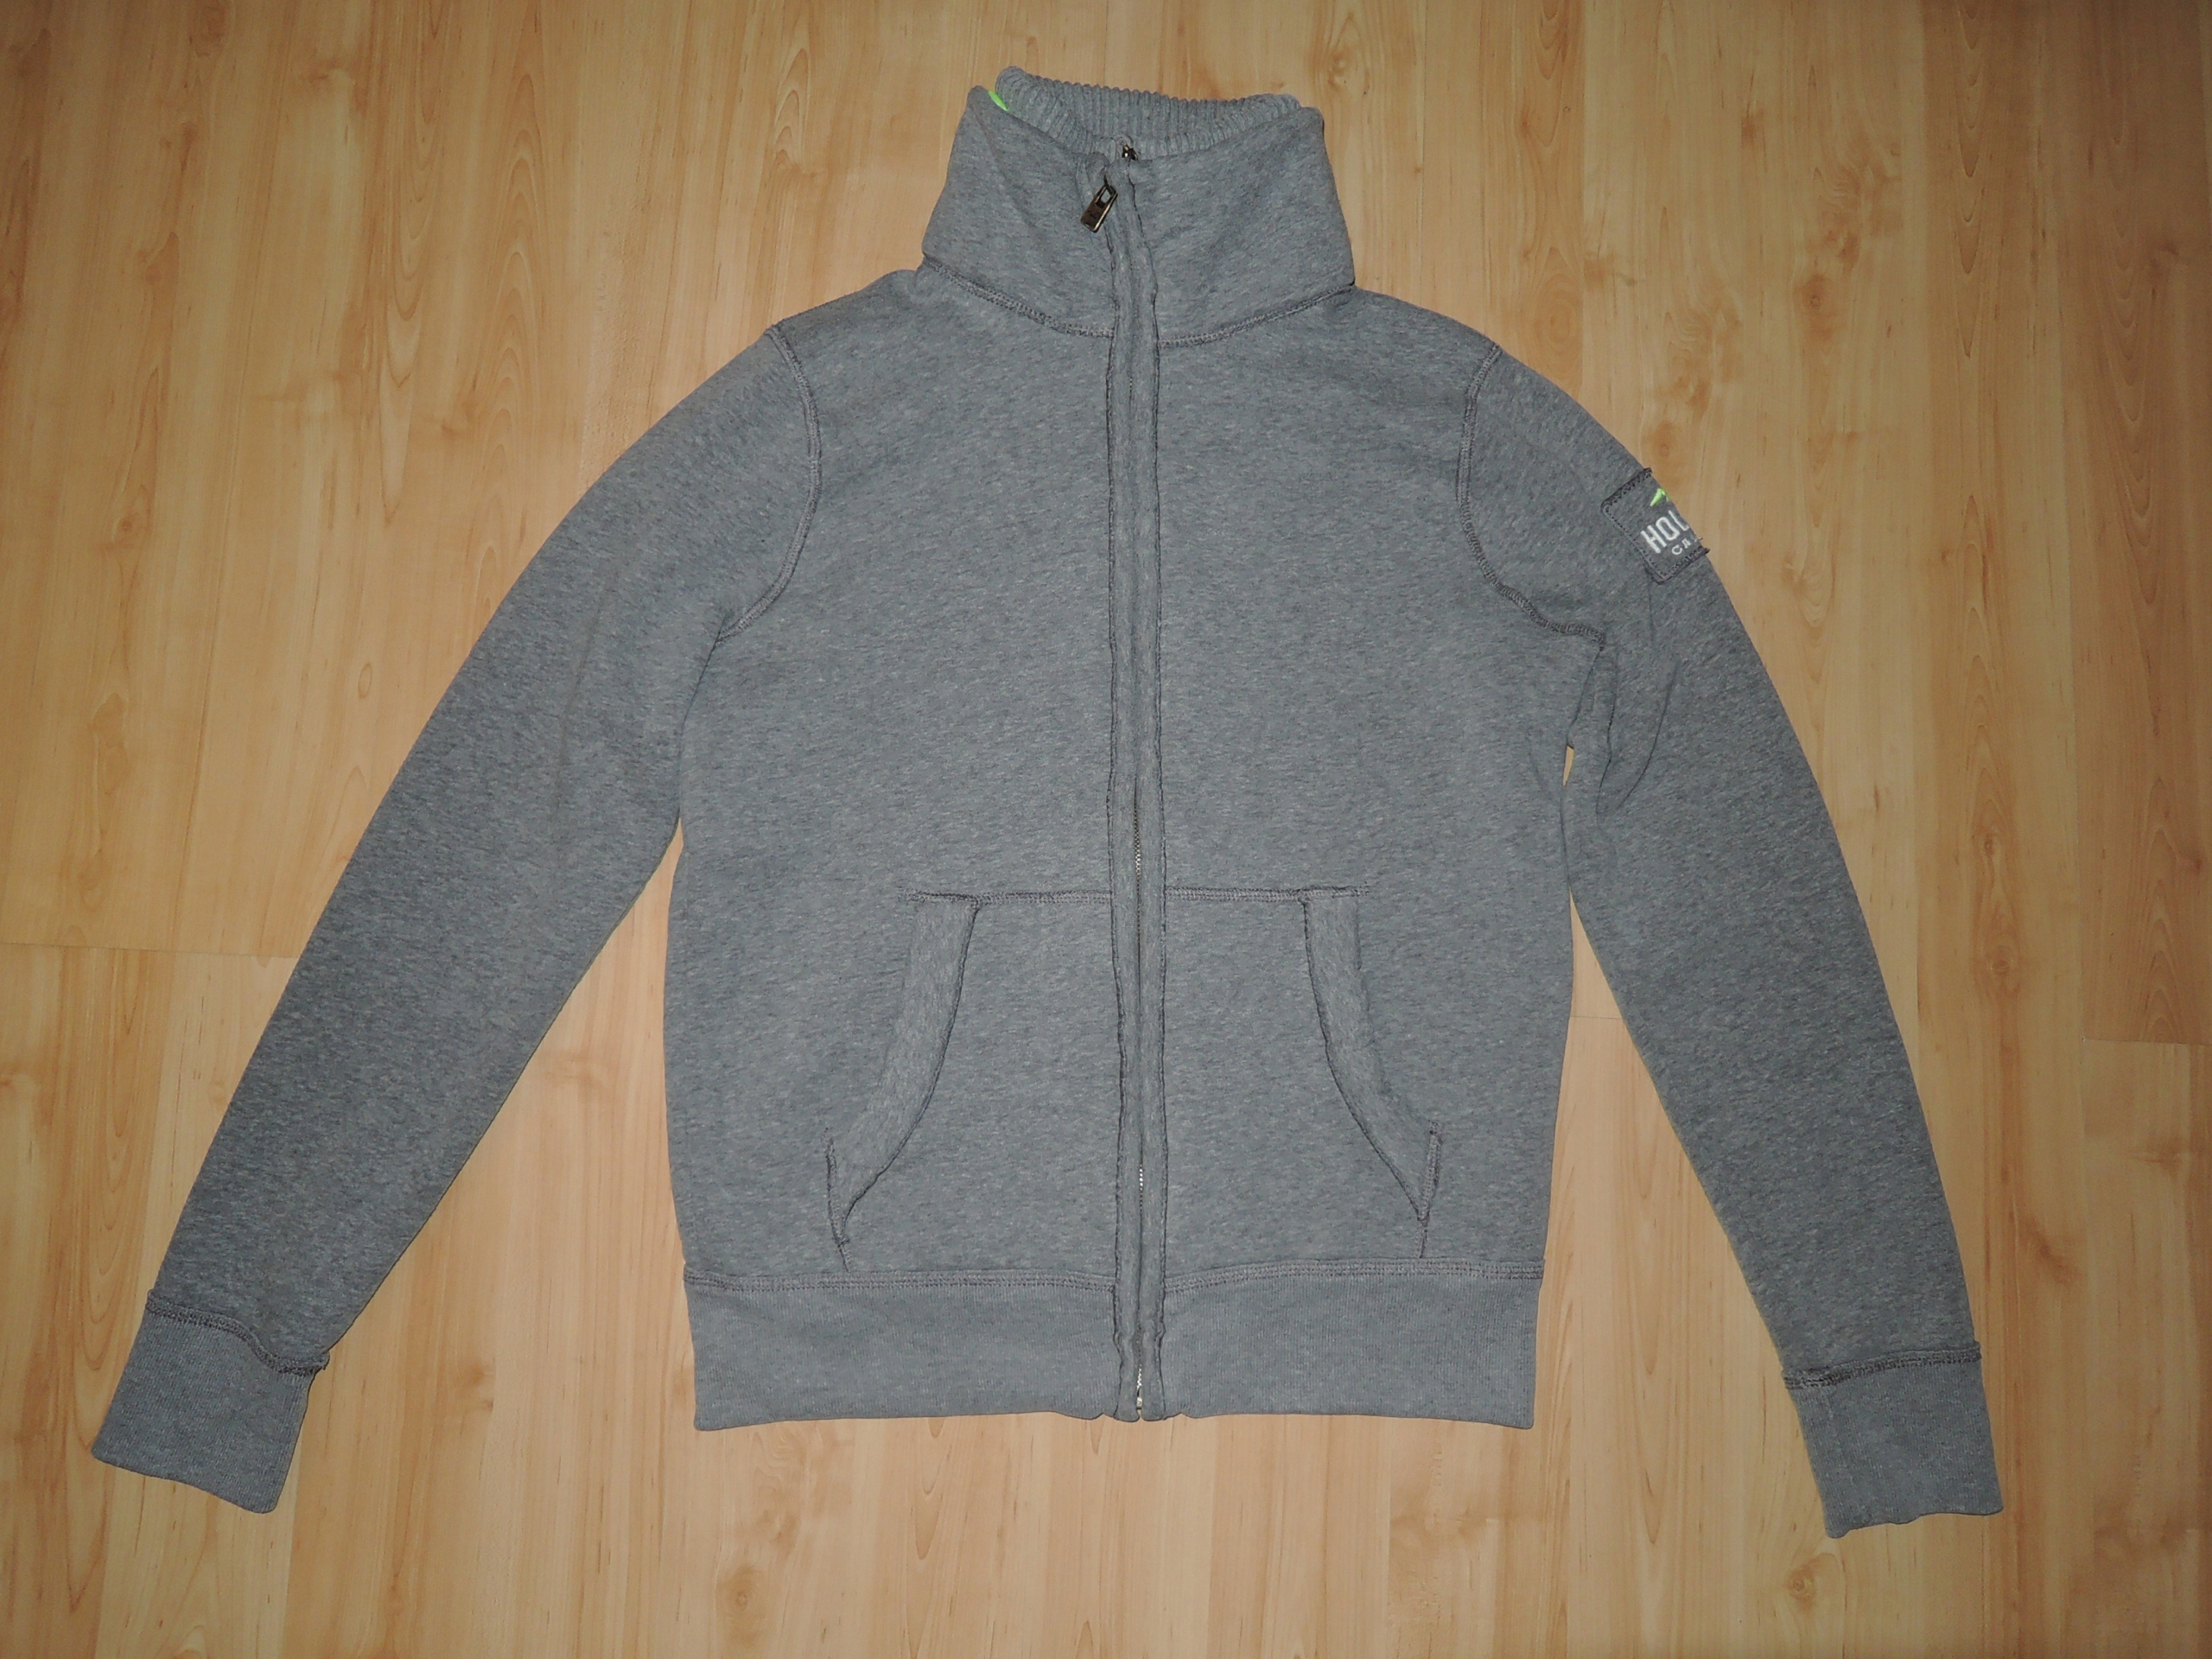 GRUBA BLUZA HOLLISTER CALIFORNIA TWO ZIP M